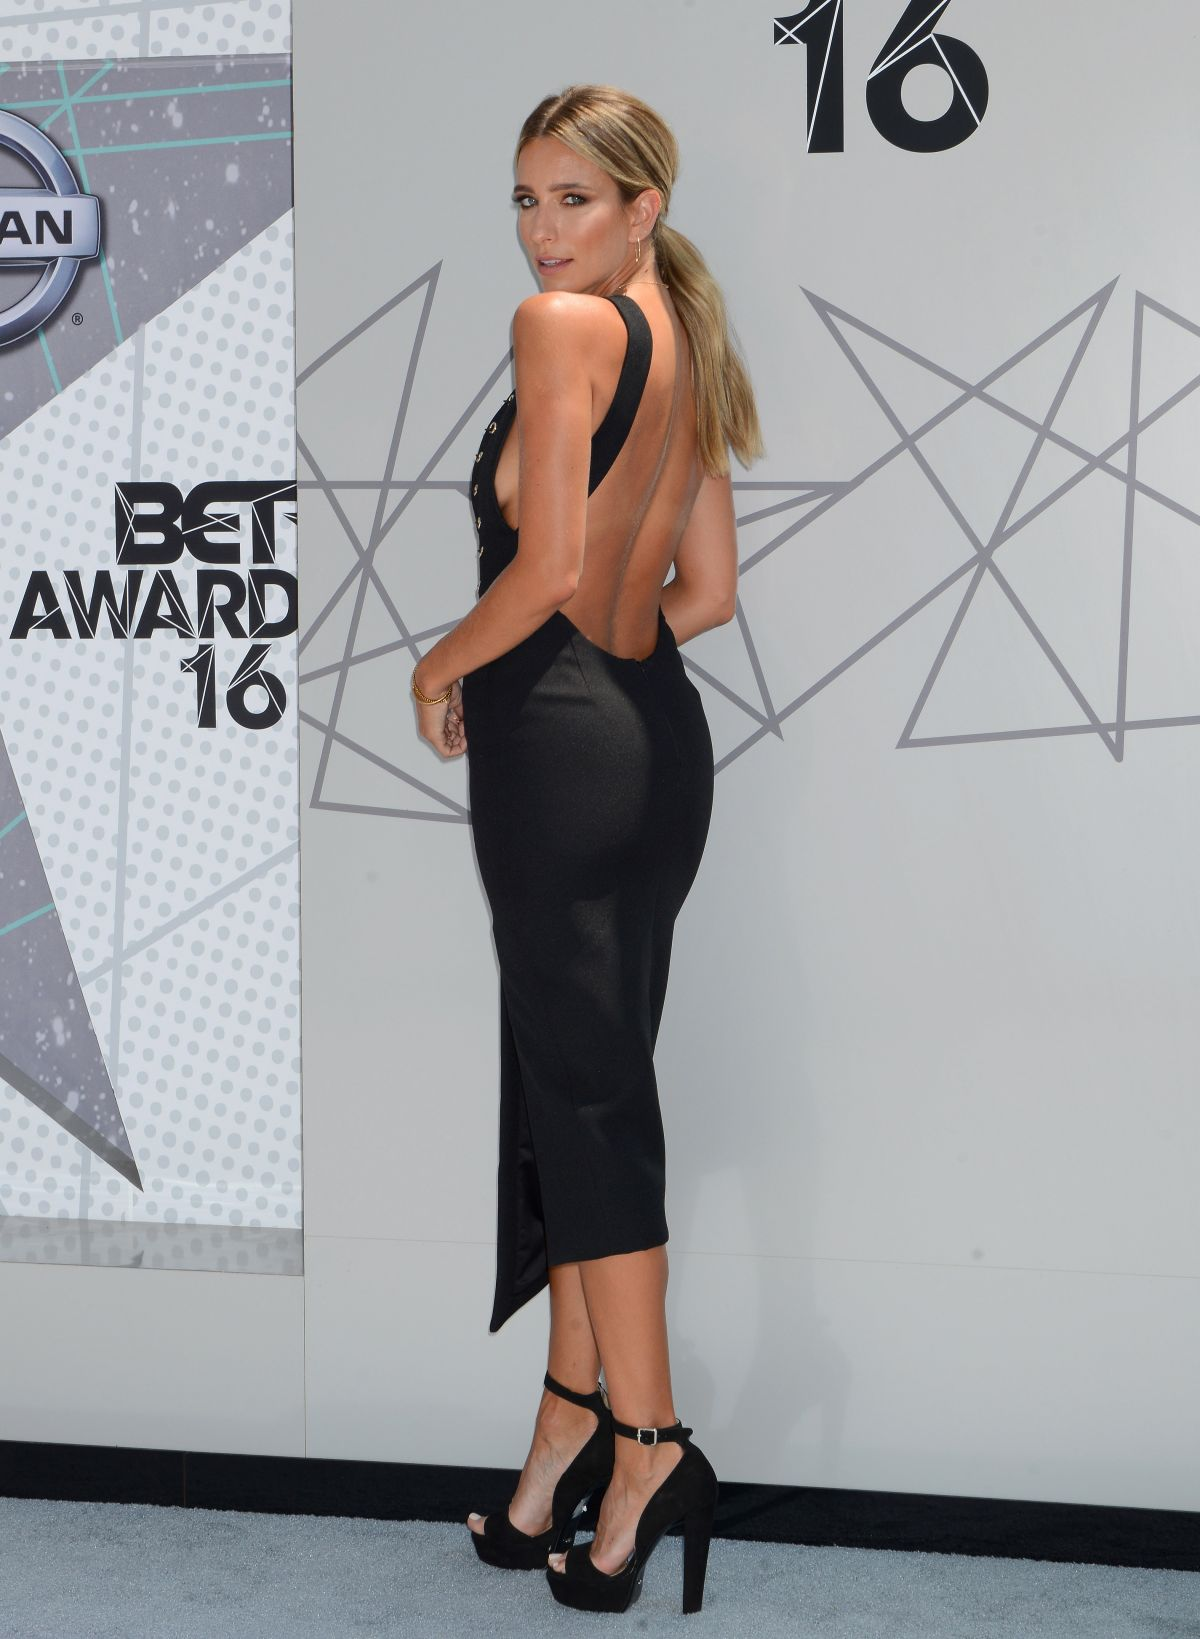 renee-bargh-at-2016-bet-awards-in-los-angeles-06-26-2016_4.jpg